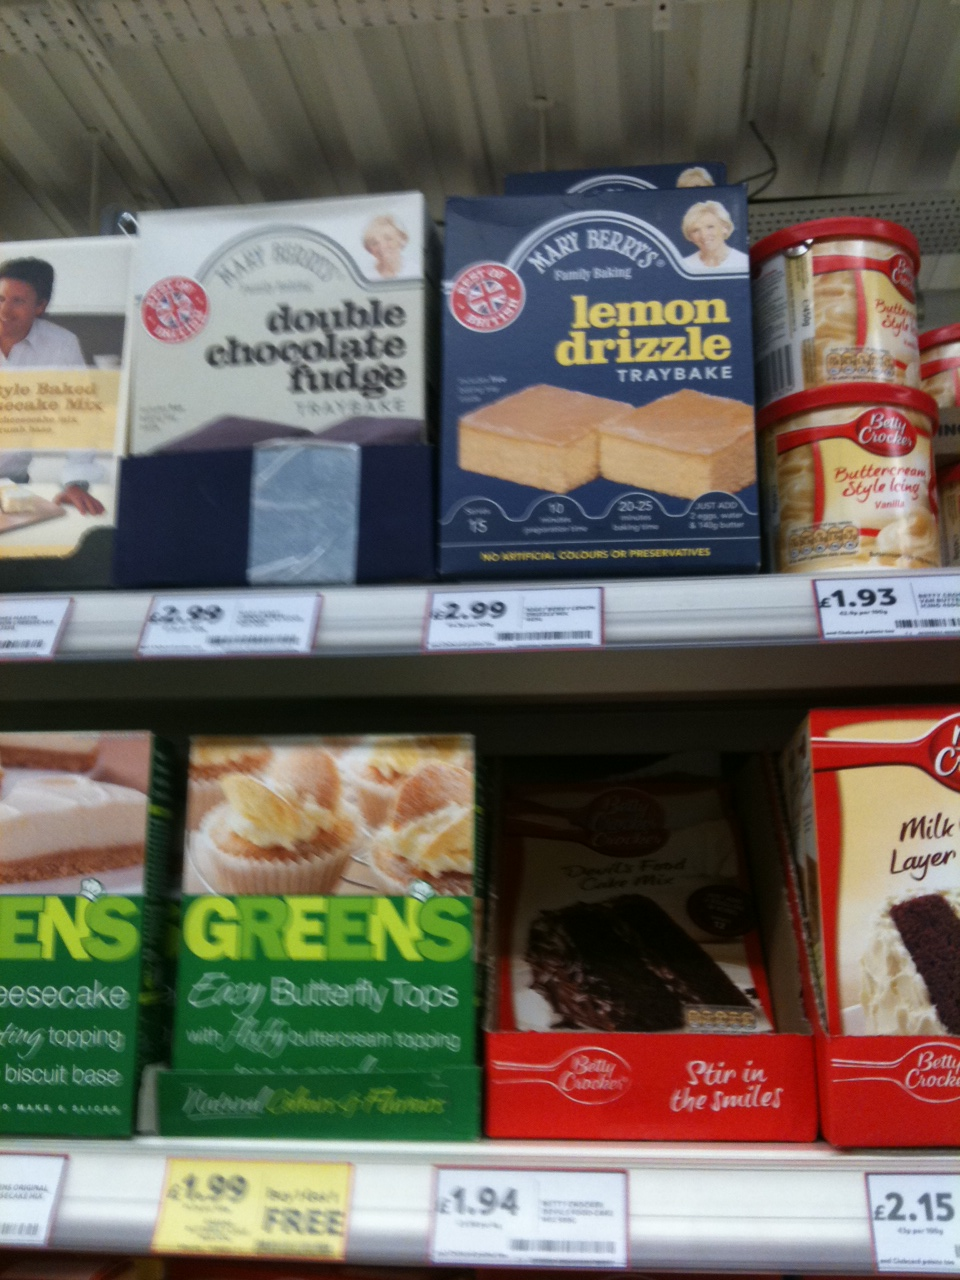 Exciting baking supplies shopping trip!*% Kerry Cooks